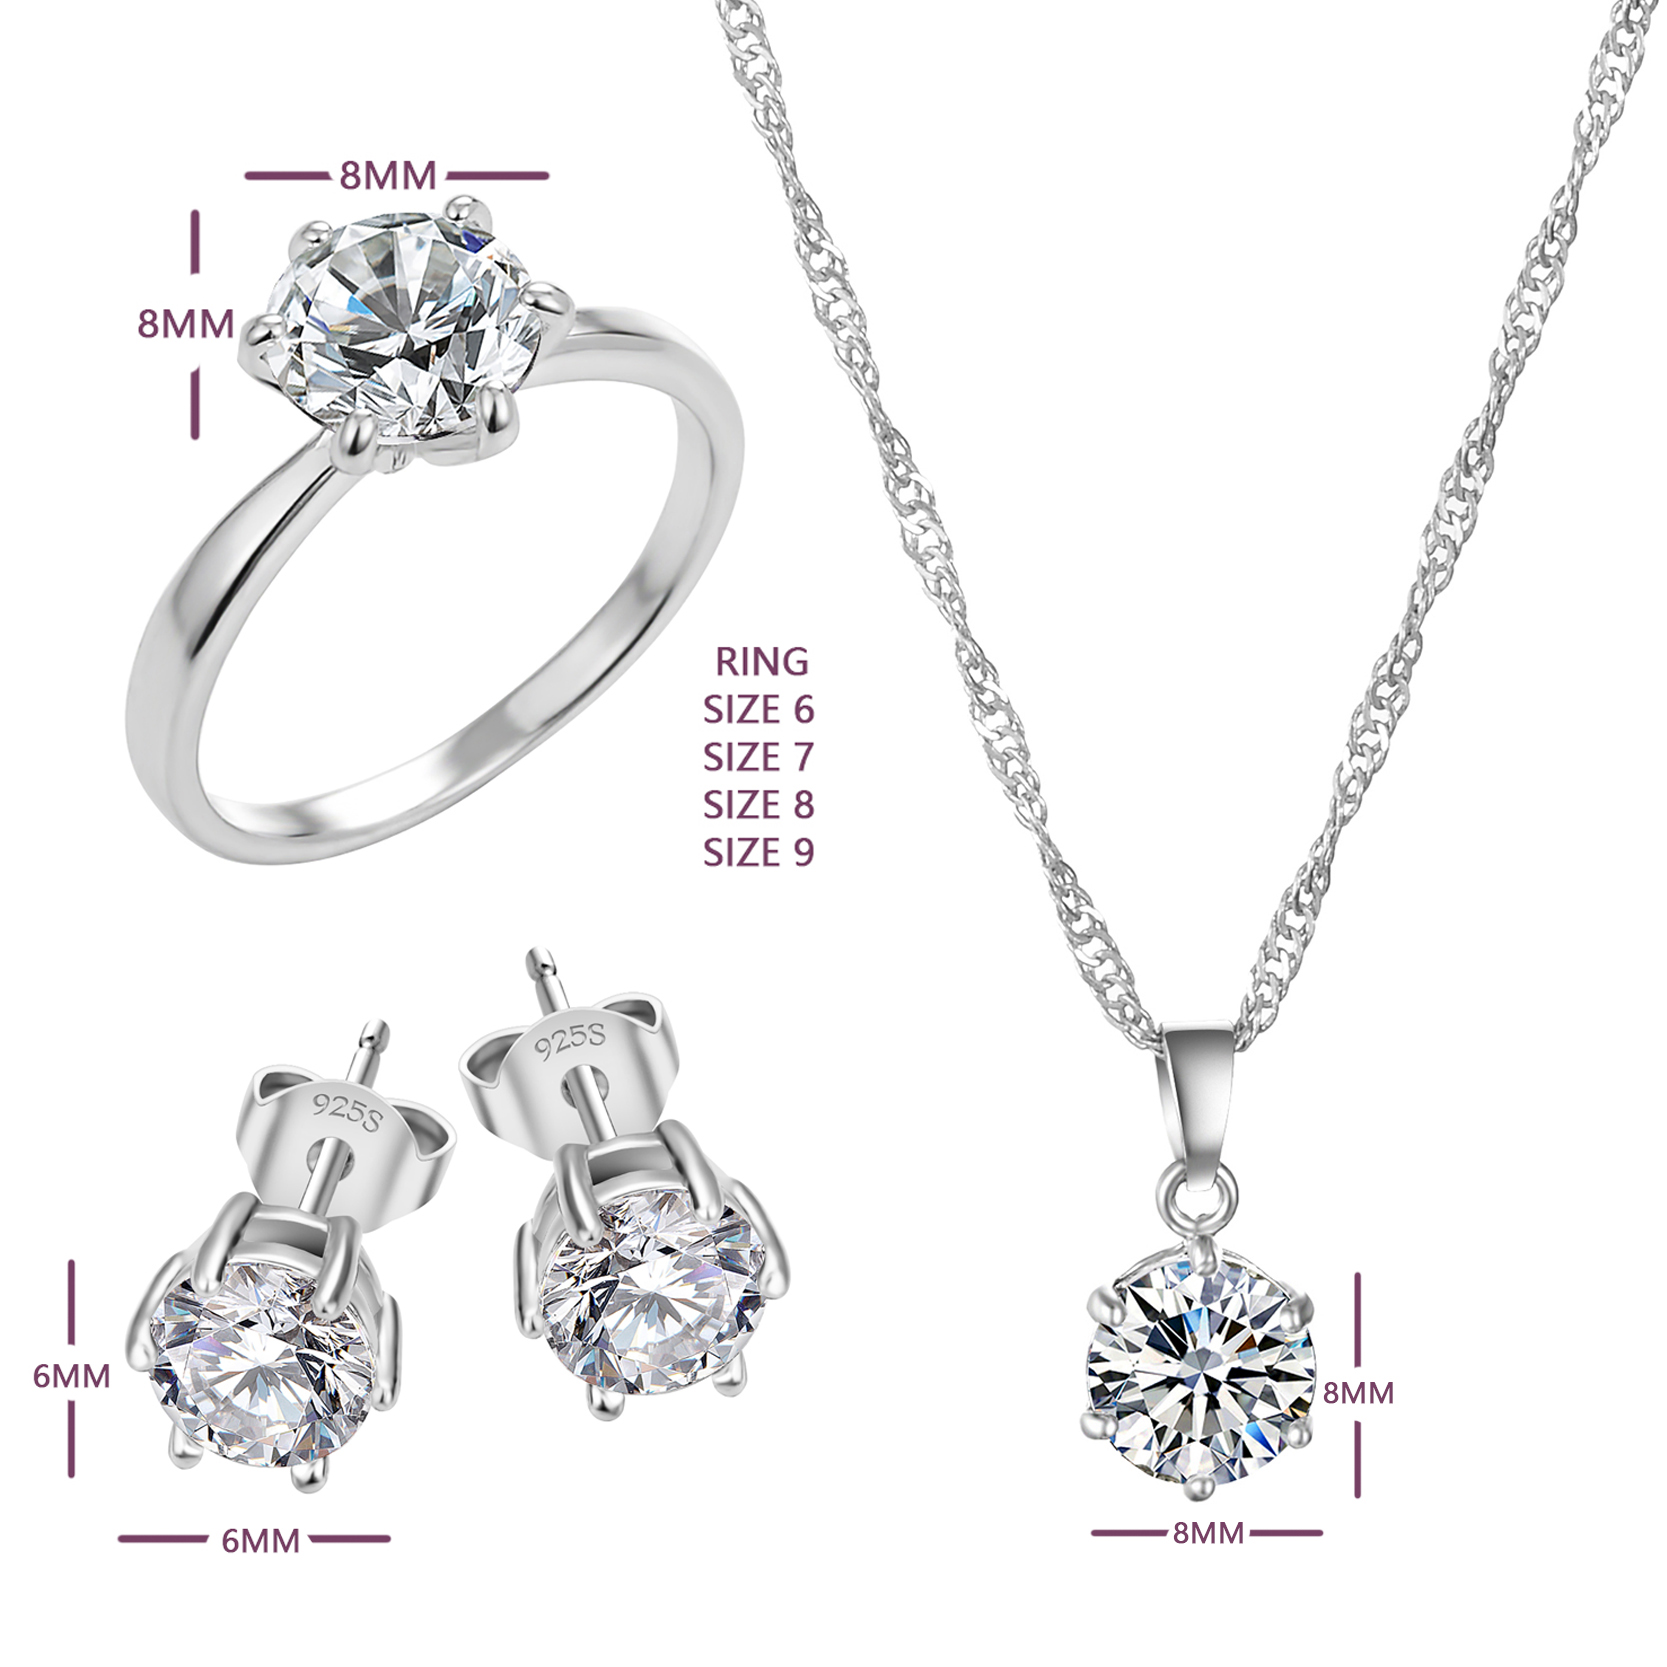 2018 Hot Silver Color Fashion Jewelry Sets Cubic Zircon Statement Necklace Earrings Rings Wedding For Women Gift